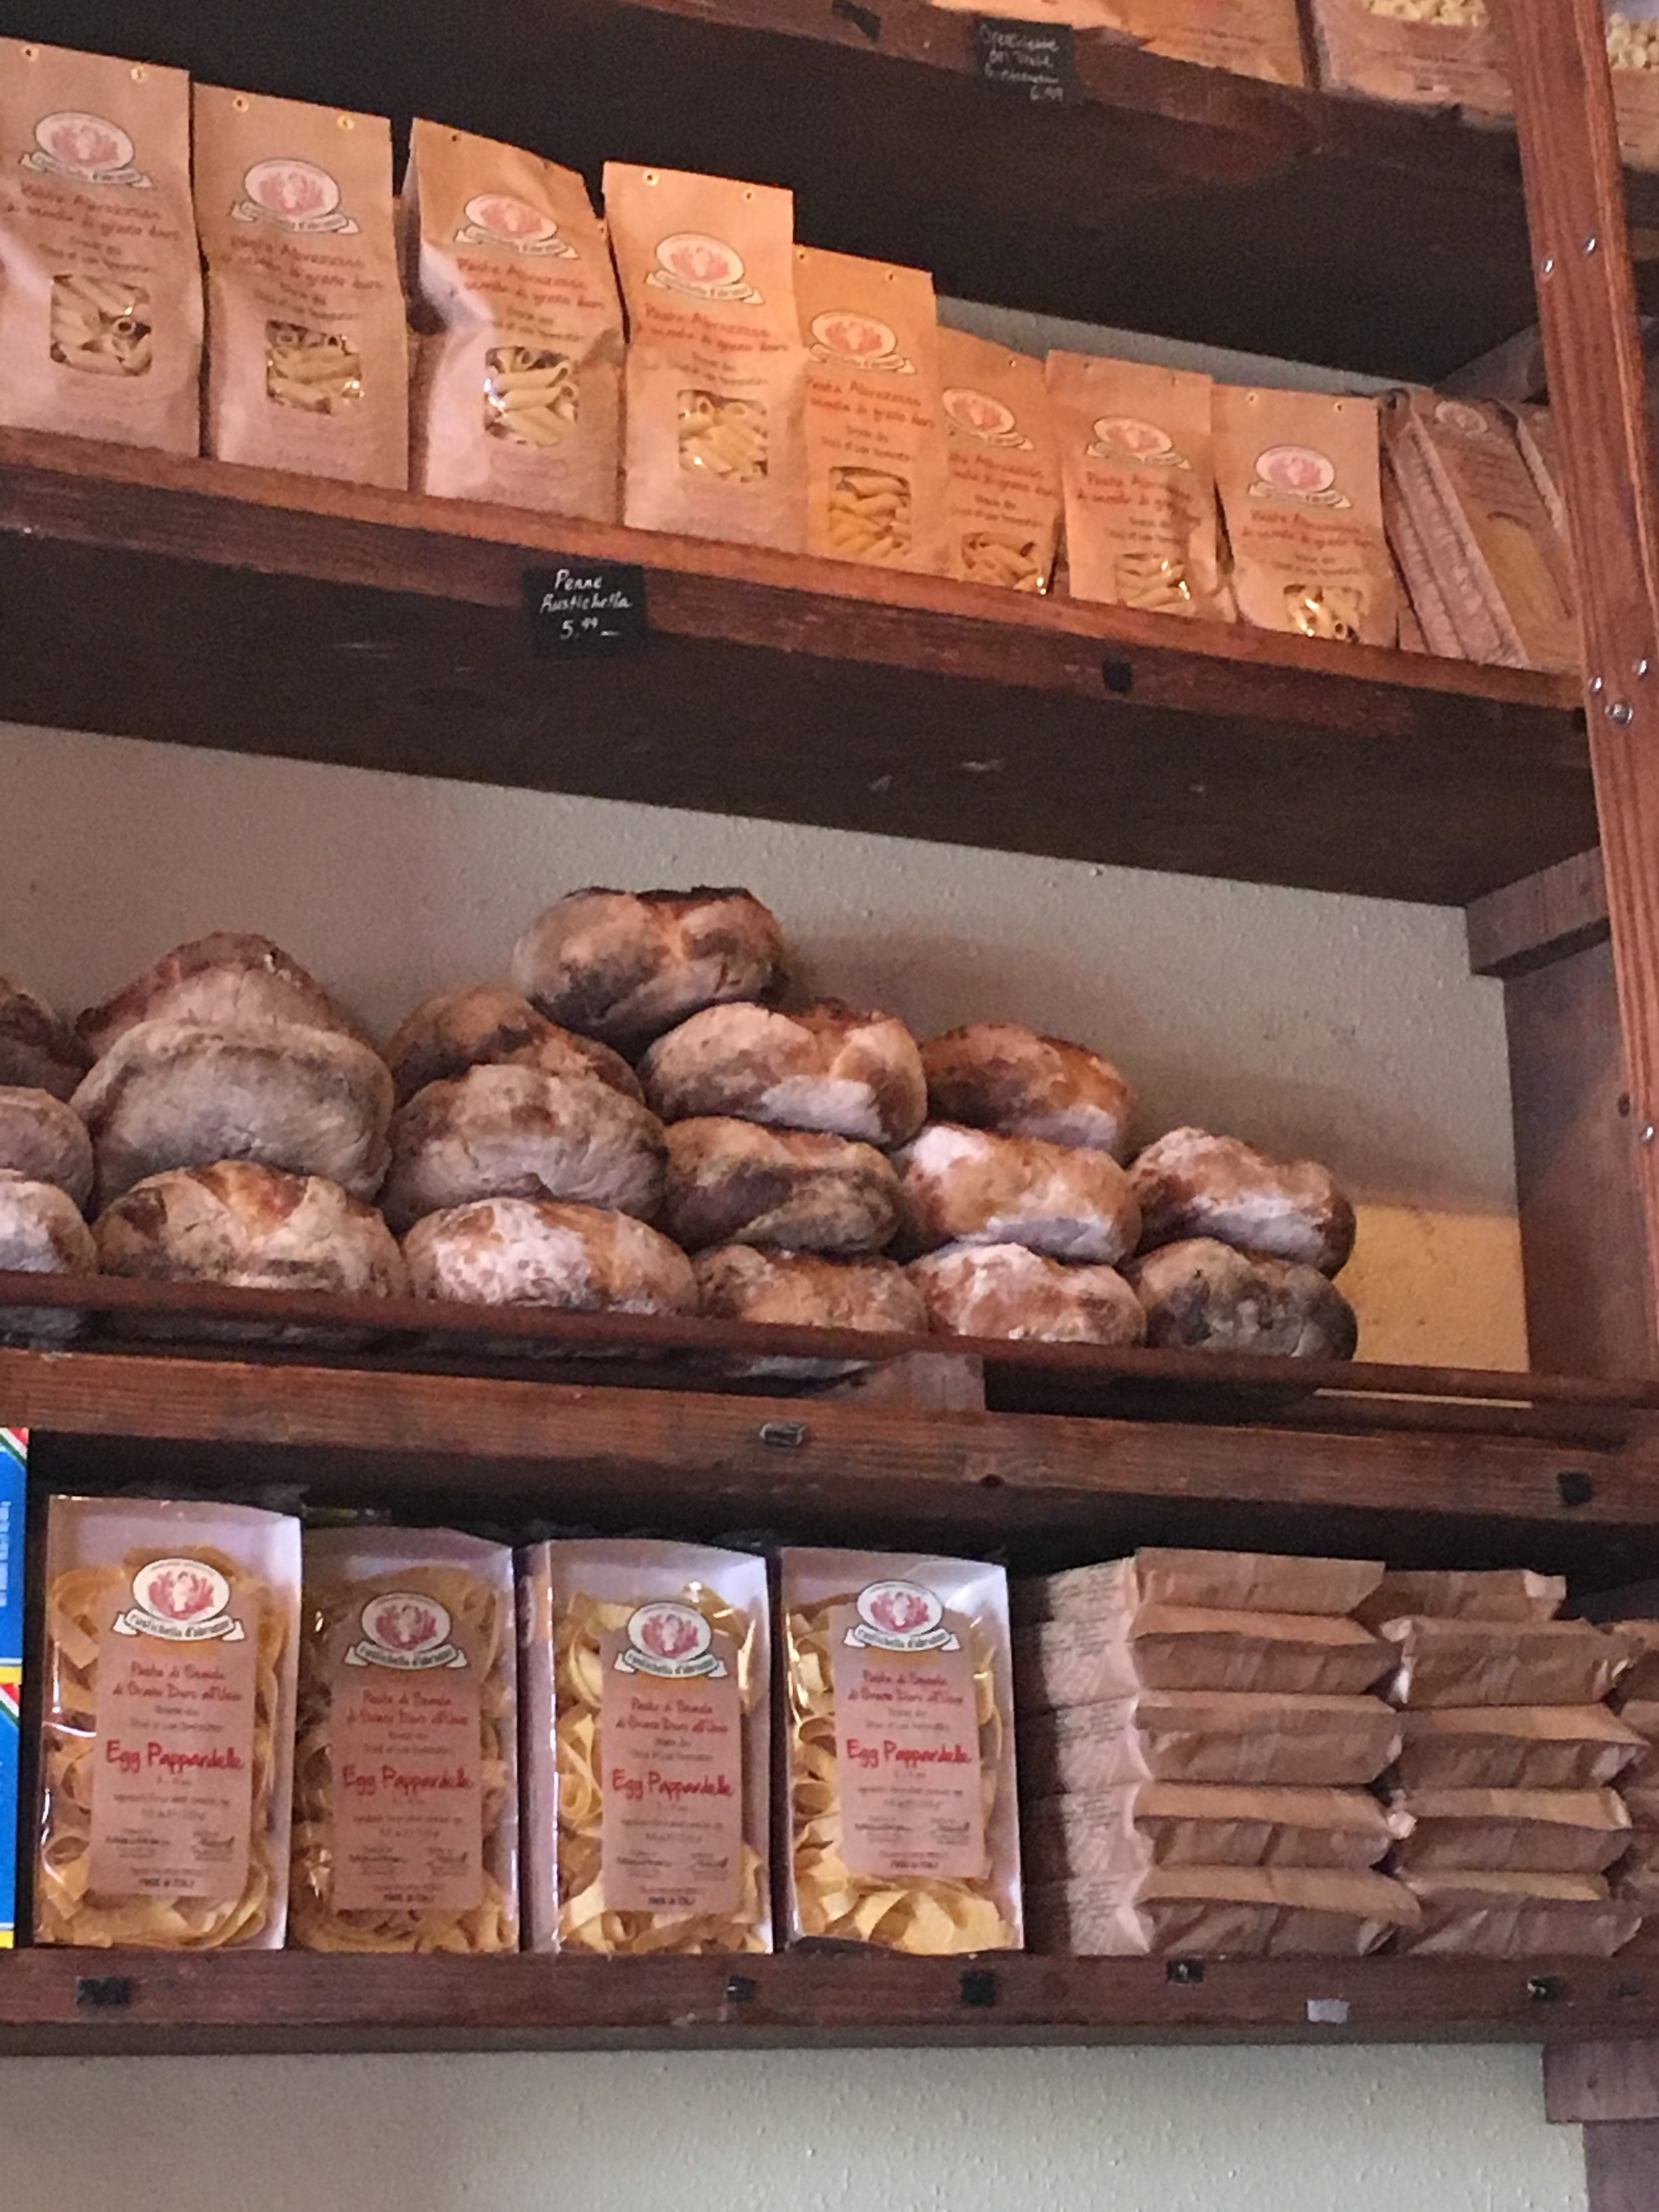 Fresh baked bread and dried pastas